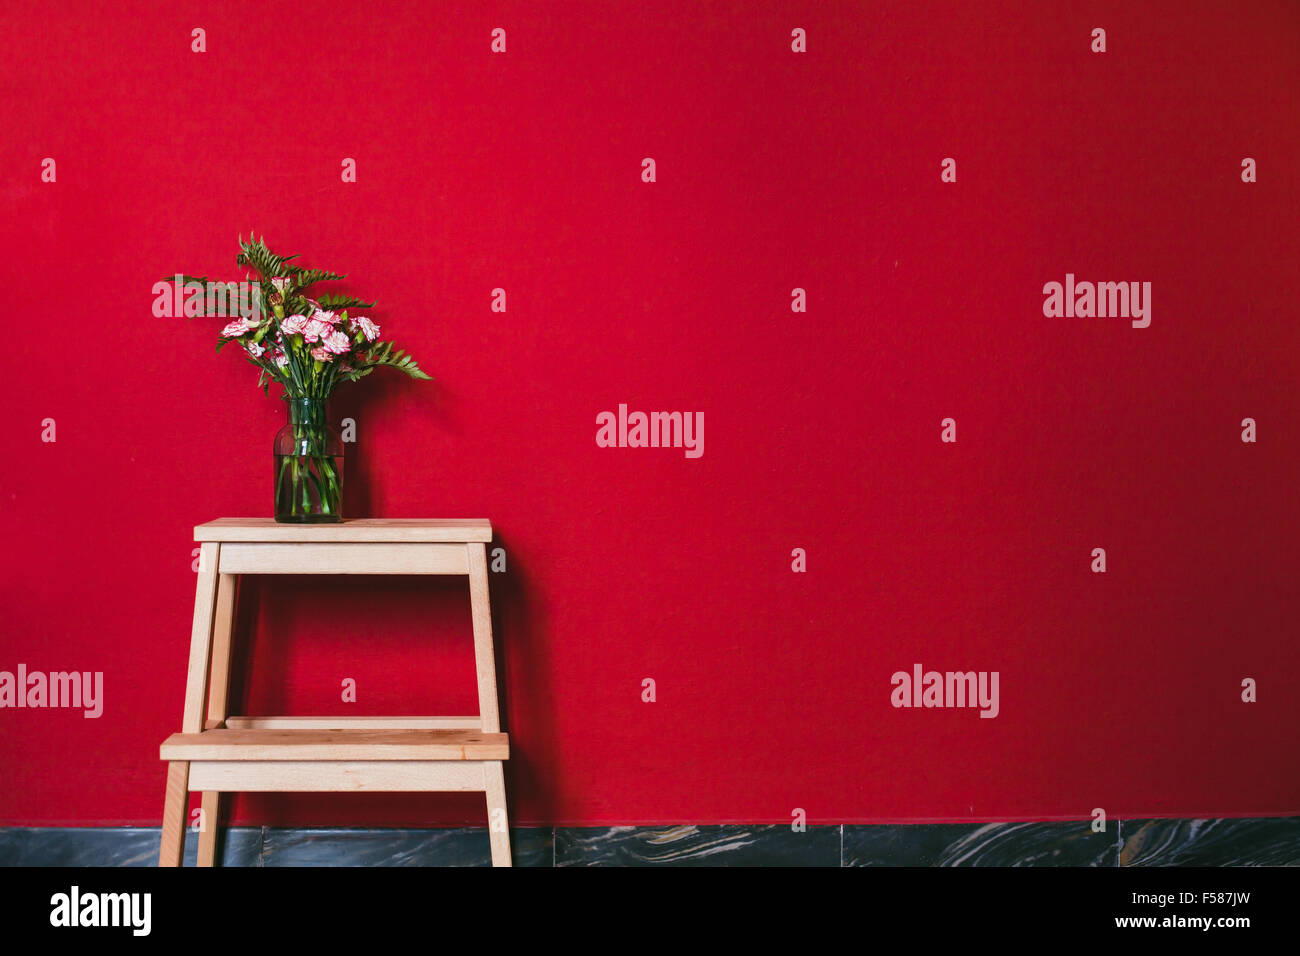 Une conception simple de l'intérieur, les fleurs dans un vase sur red wall background Photo Stock